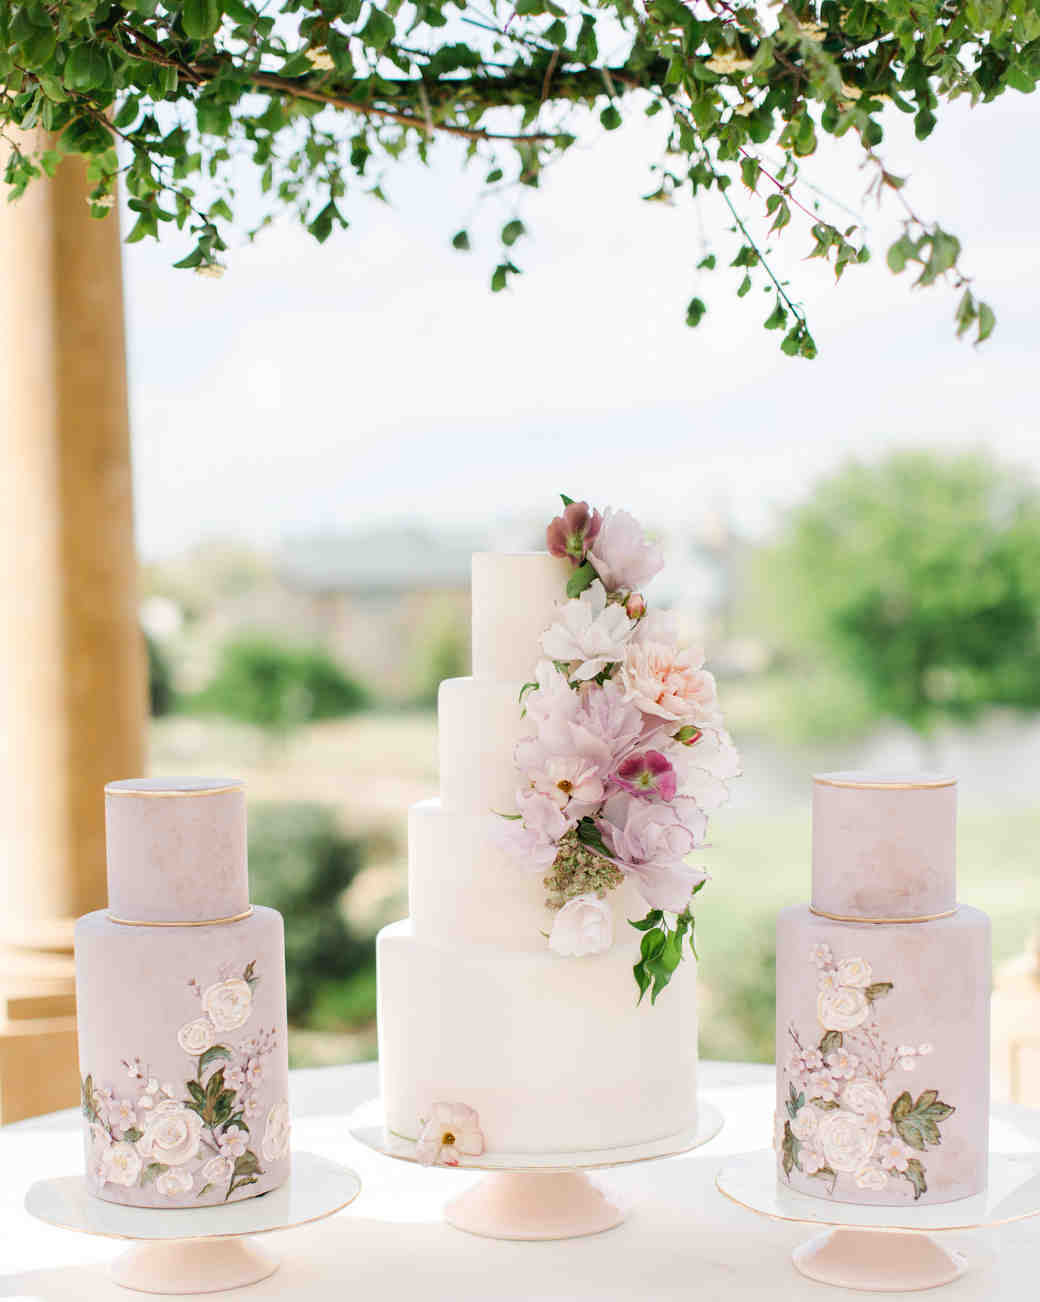 25 New Takes on Traditional Wedding Cake Flavors   Martha Stewart     three lavender wedding cakes with flowers